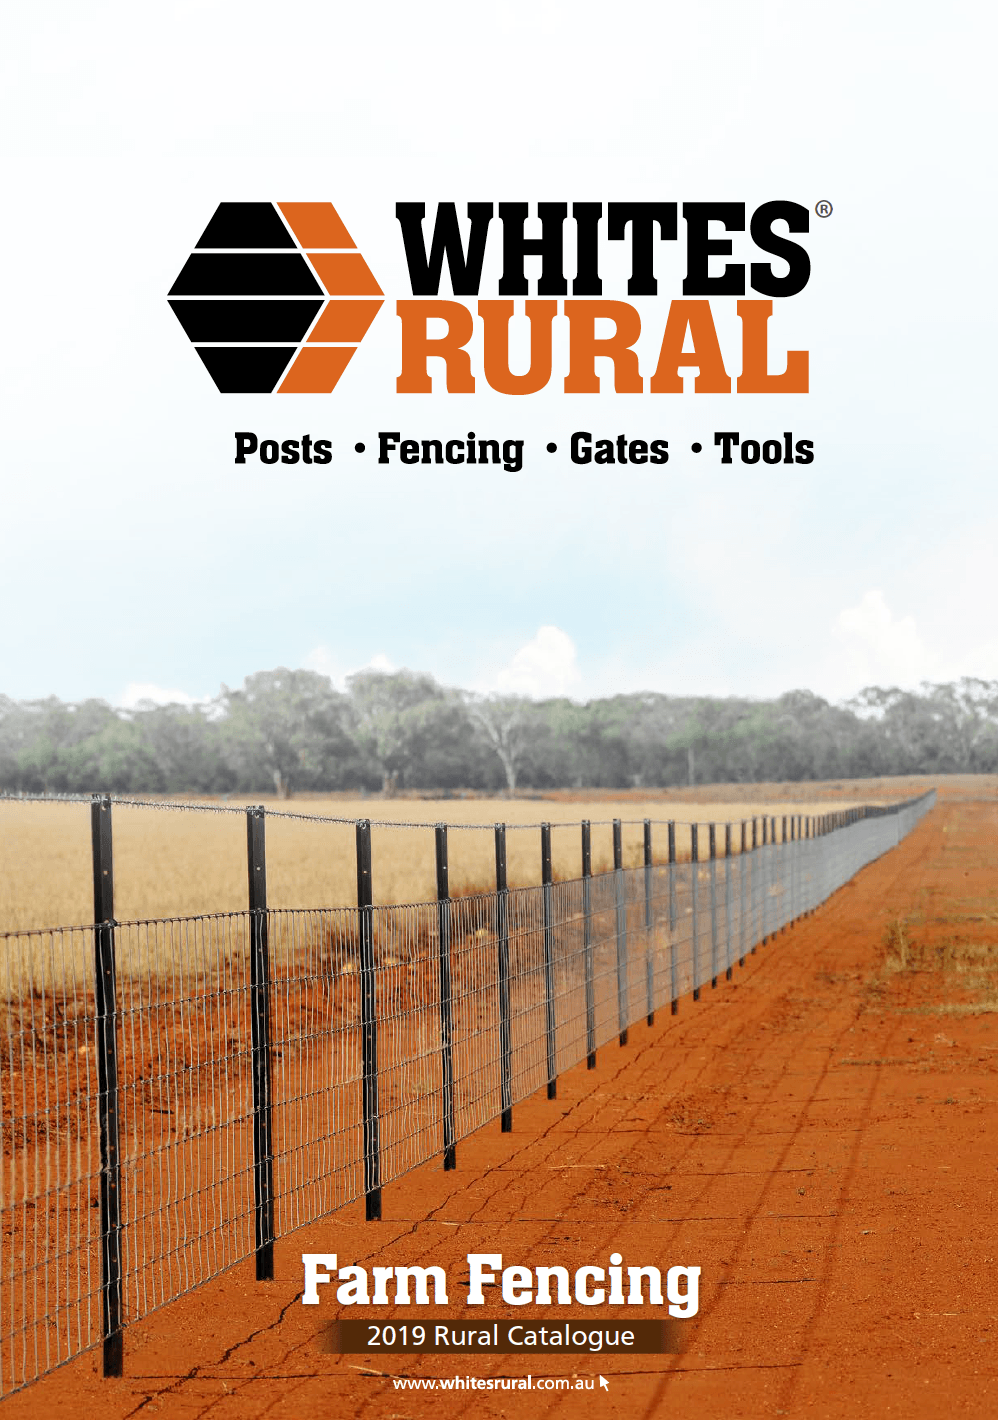 Whites Rural Catalogue